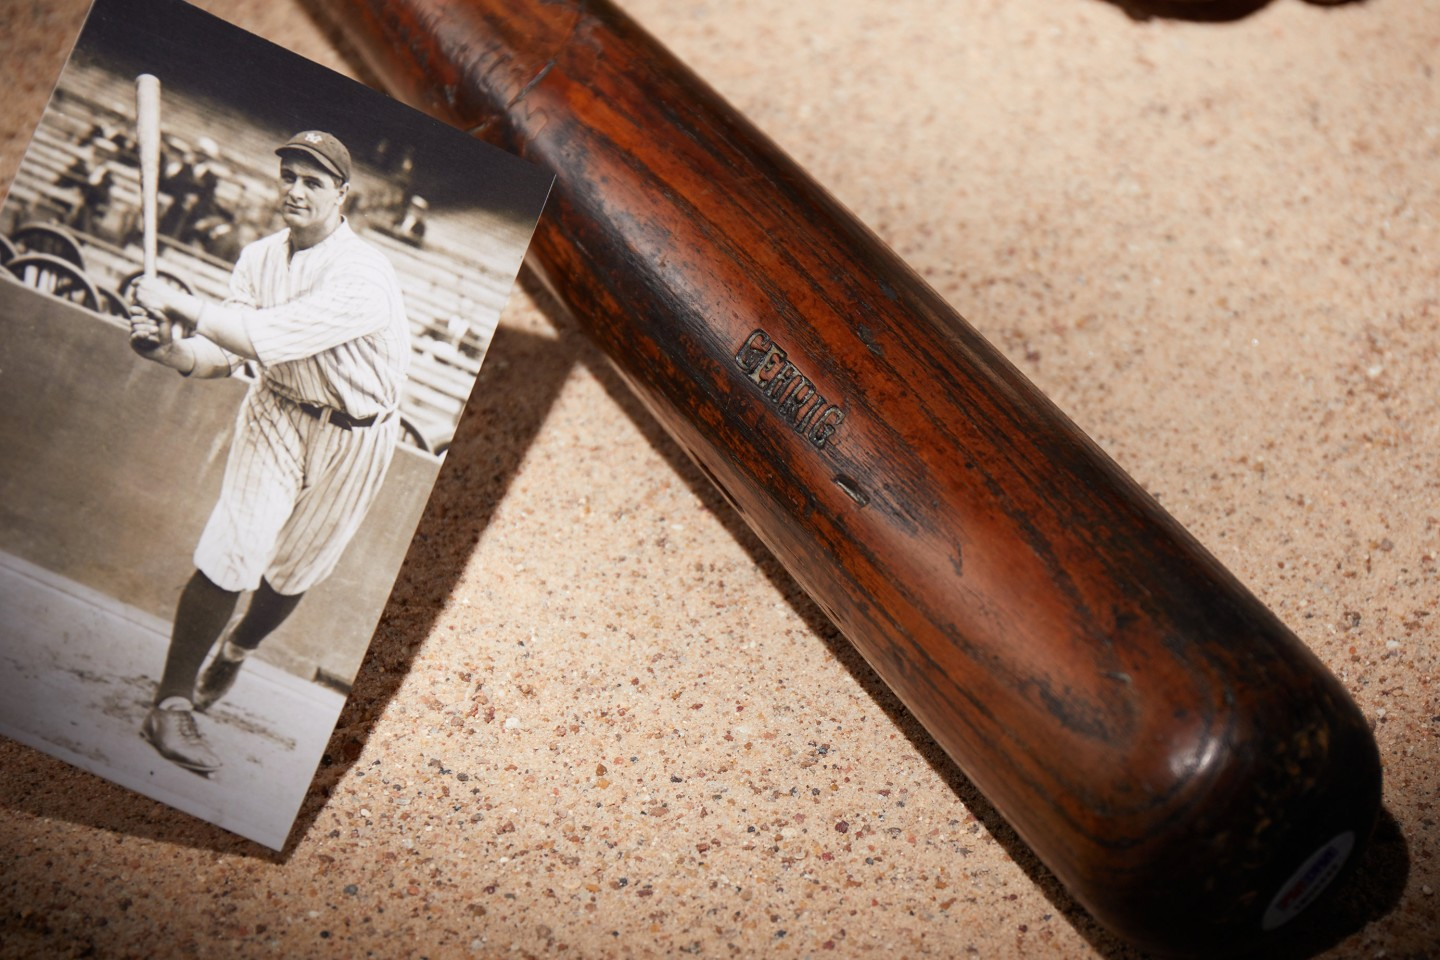 Lou Gehrig 1922 Baseball Bat | Auction House: Heritage Auctions | Price fetched: $1,025,000 | Auctioned: February 23, 2020